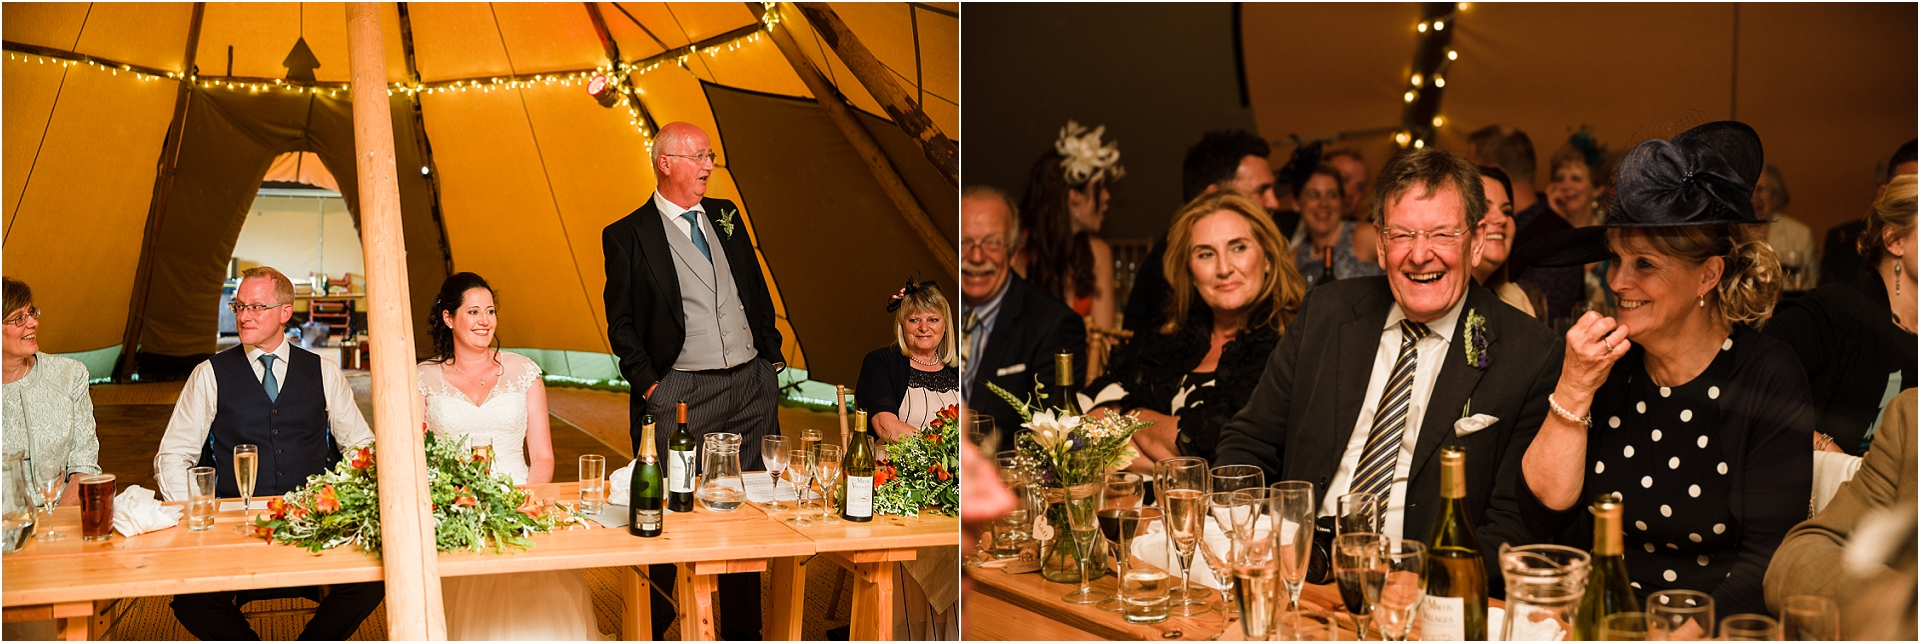 tipi-wedding-photography_0068